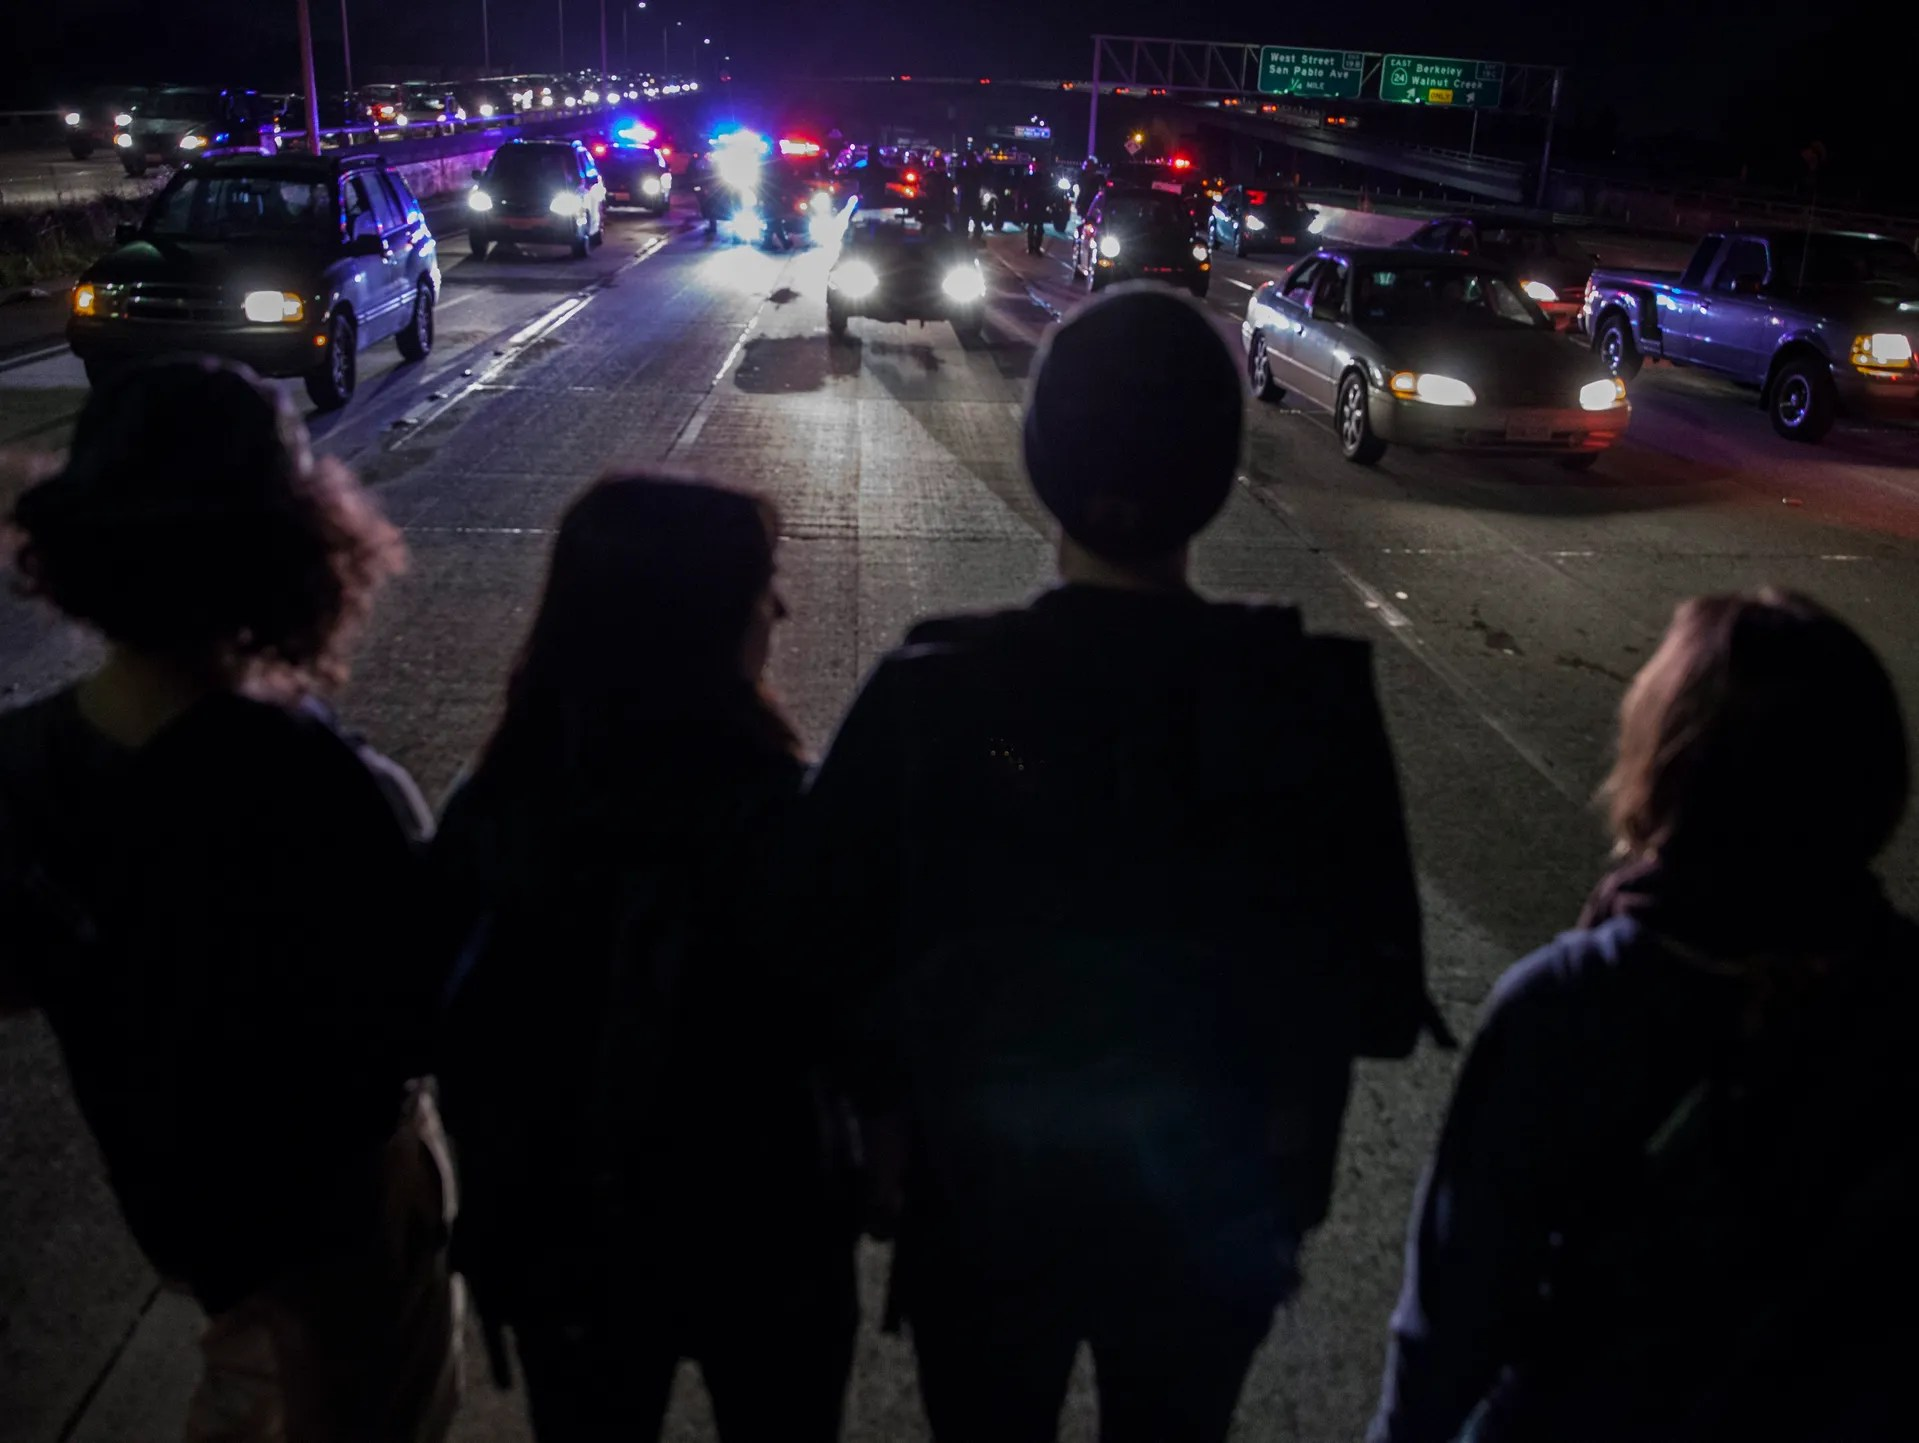 Demonstrators block traffic on the HWY 580 freeway